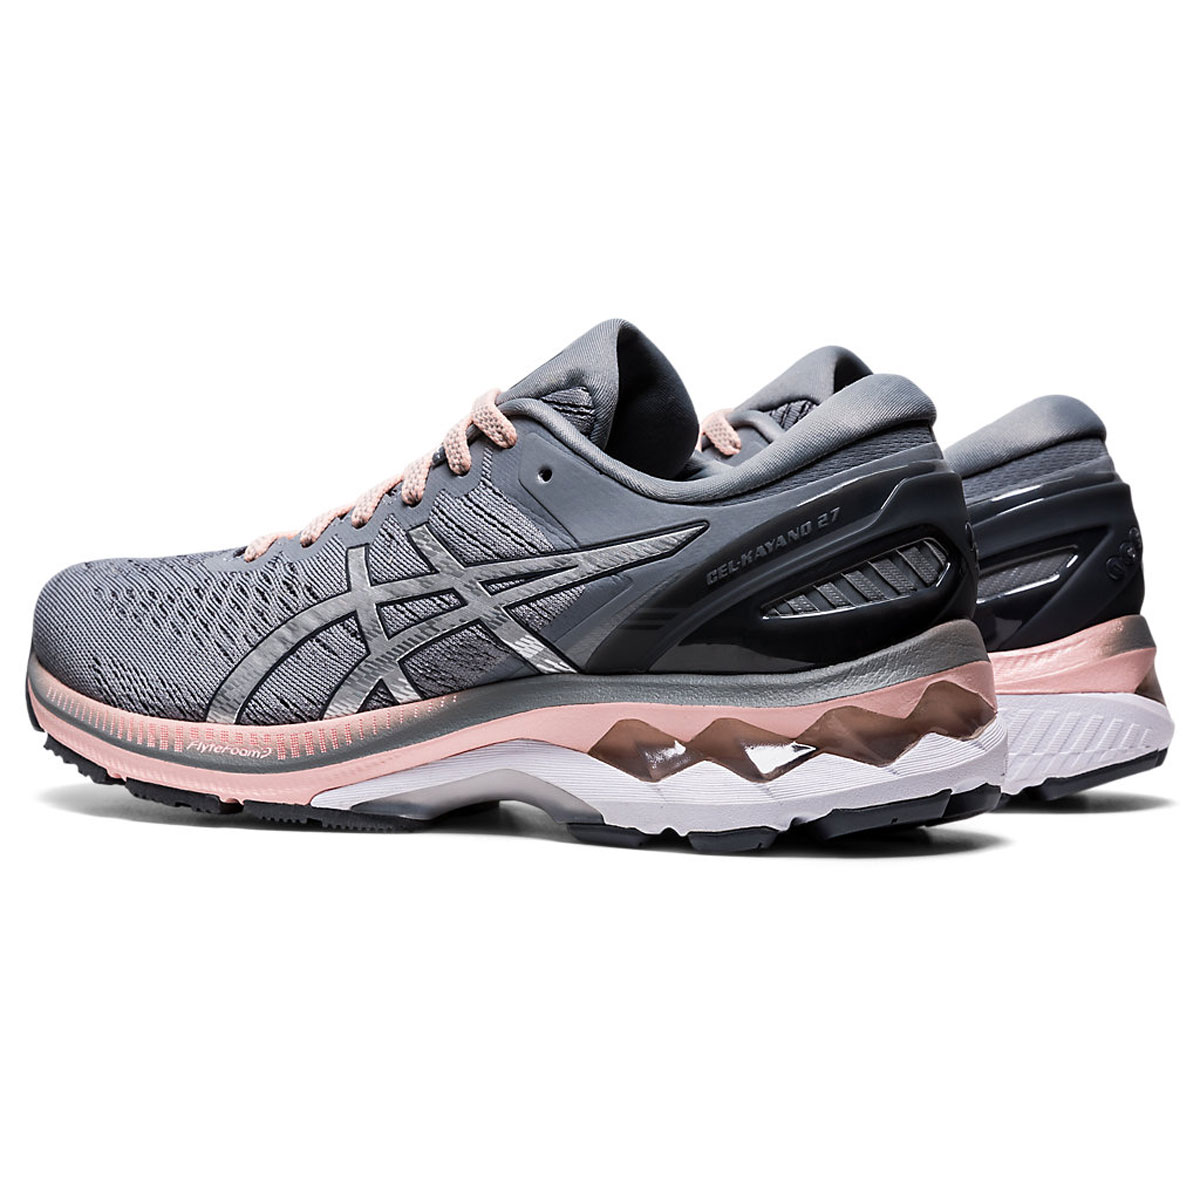 Women's Asics GEL-Kayano 27 Running Shoe - Color: Sheet Rock/Pure (Regular Width) - Size: 5, Sheet Rock/Pure, large, image 4